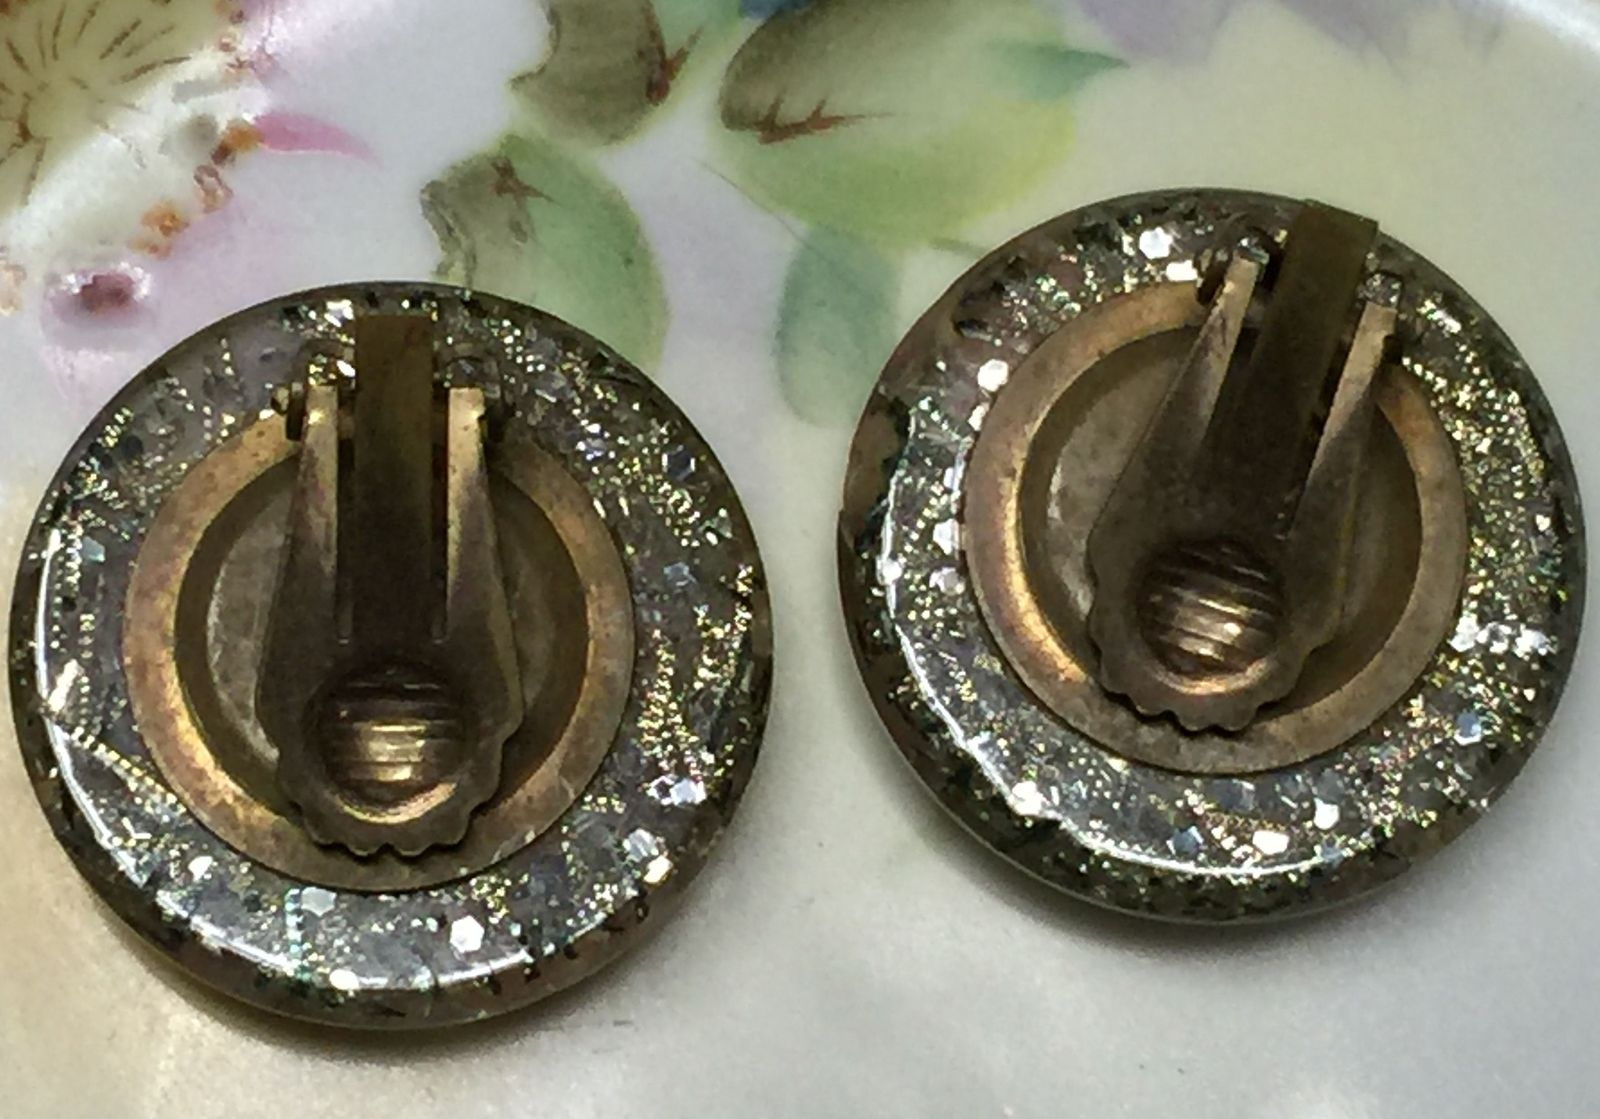 VTG 40s Pink Flowers Gold Flake Silver Glitter 3D Acrylic Round Clip On Earrings image 5